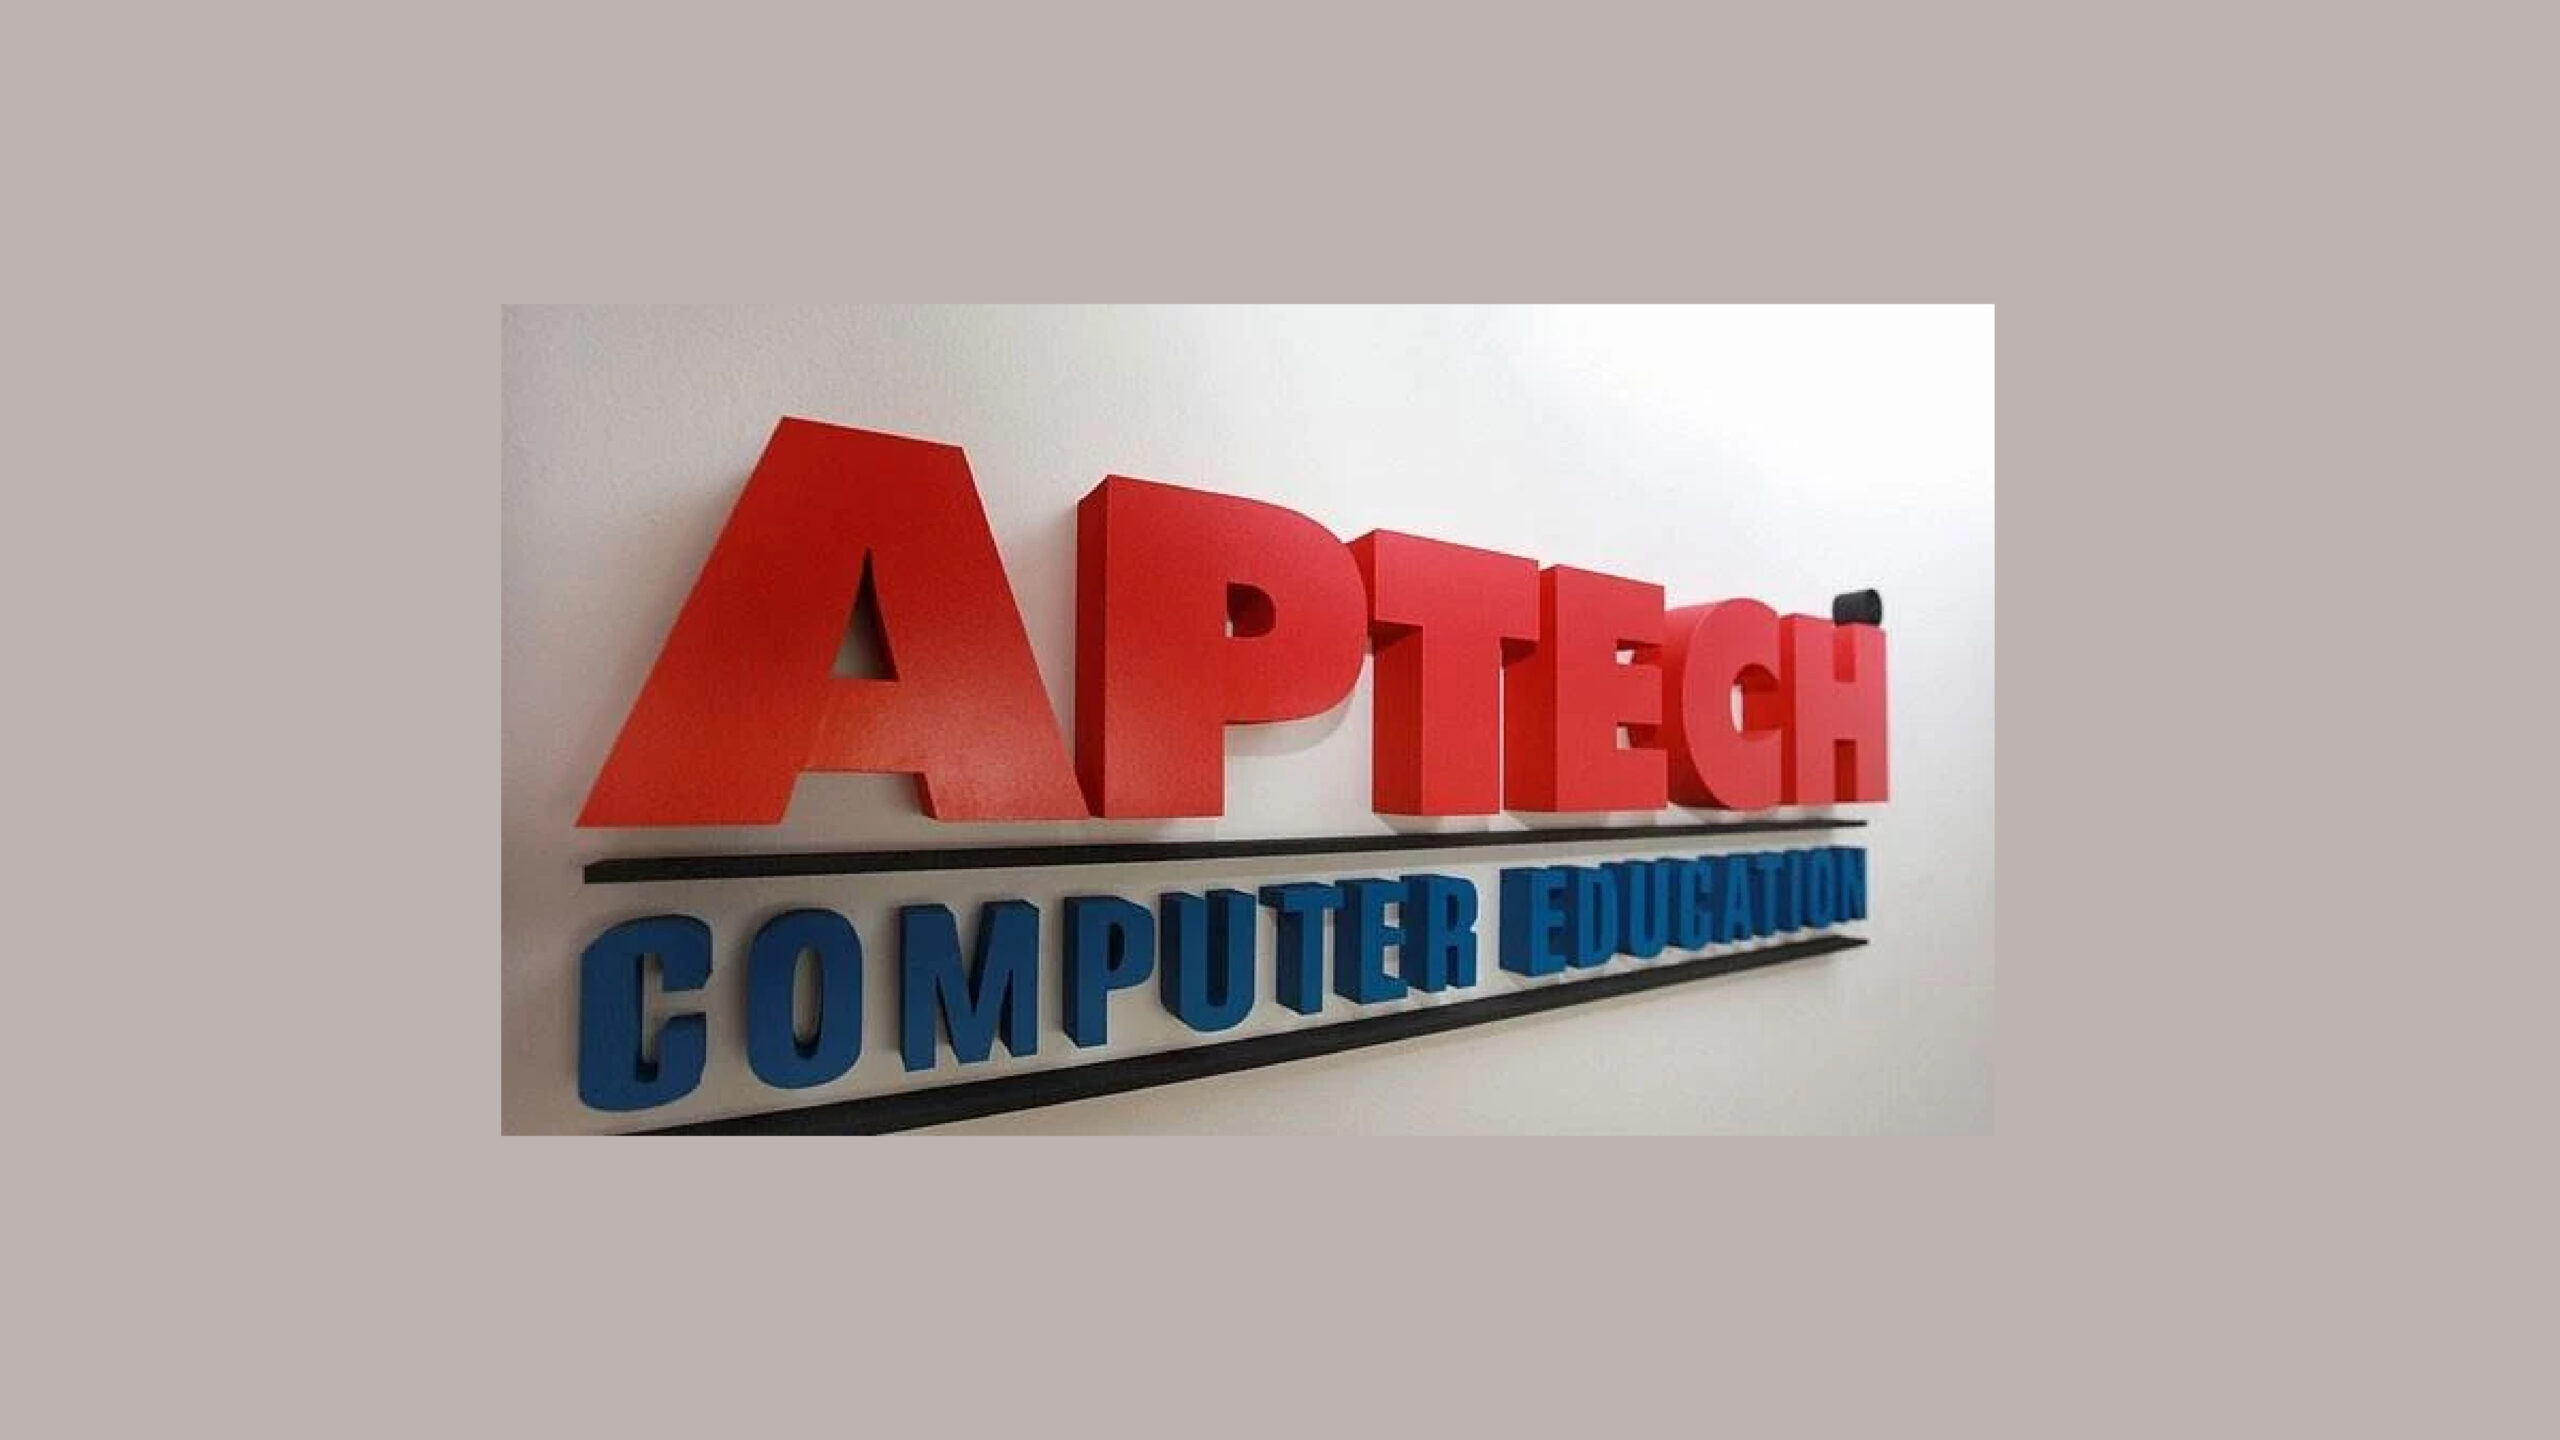 Case against IT company Aptech registered